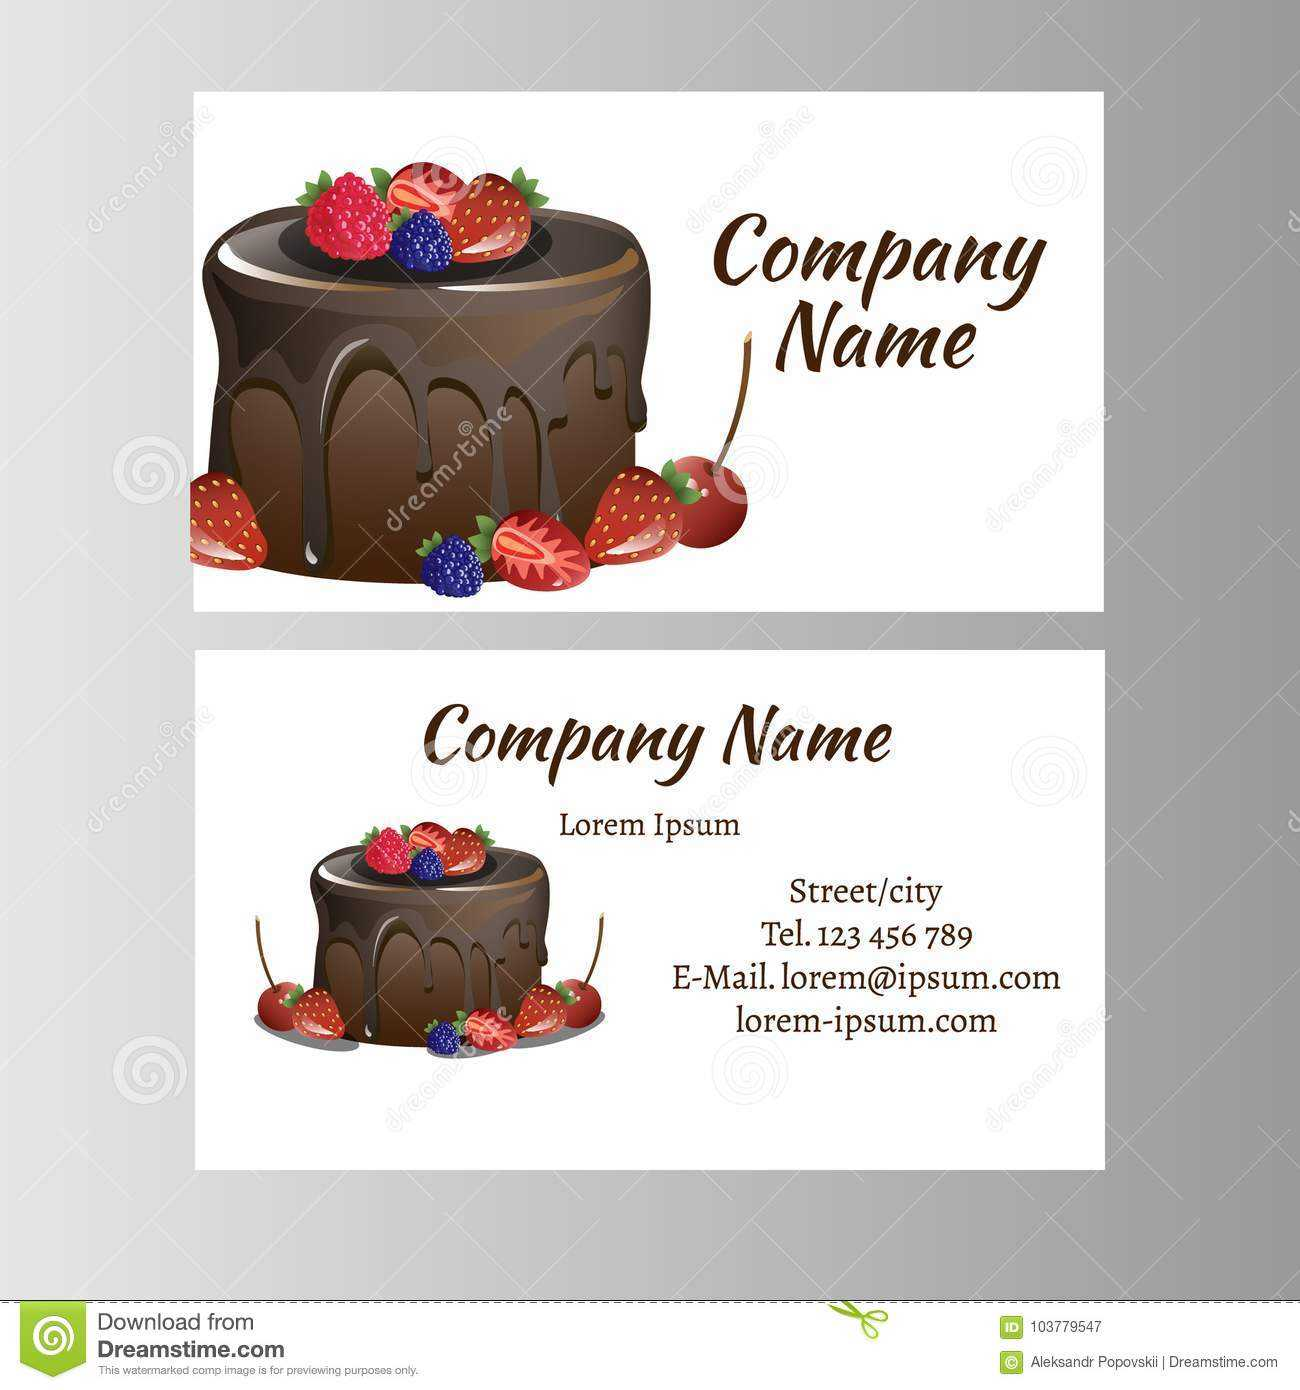 Business Card Template For Bakery Business. Stock Vector In Cake Business Cards Templates Free